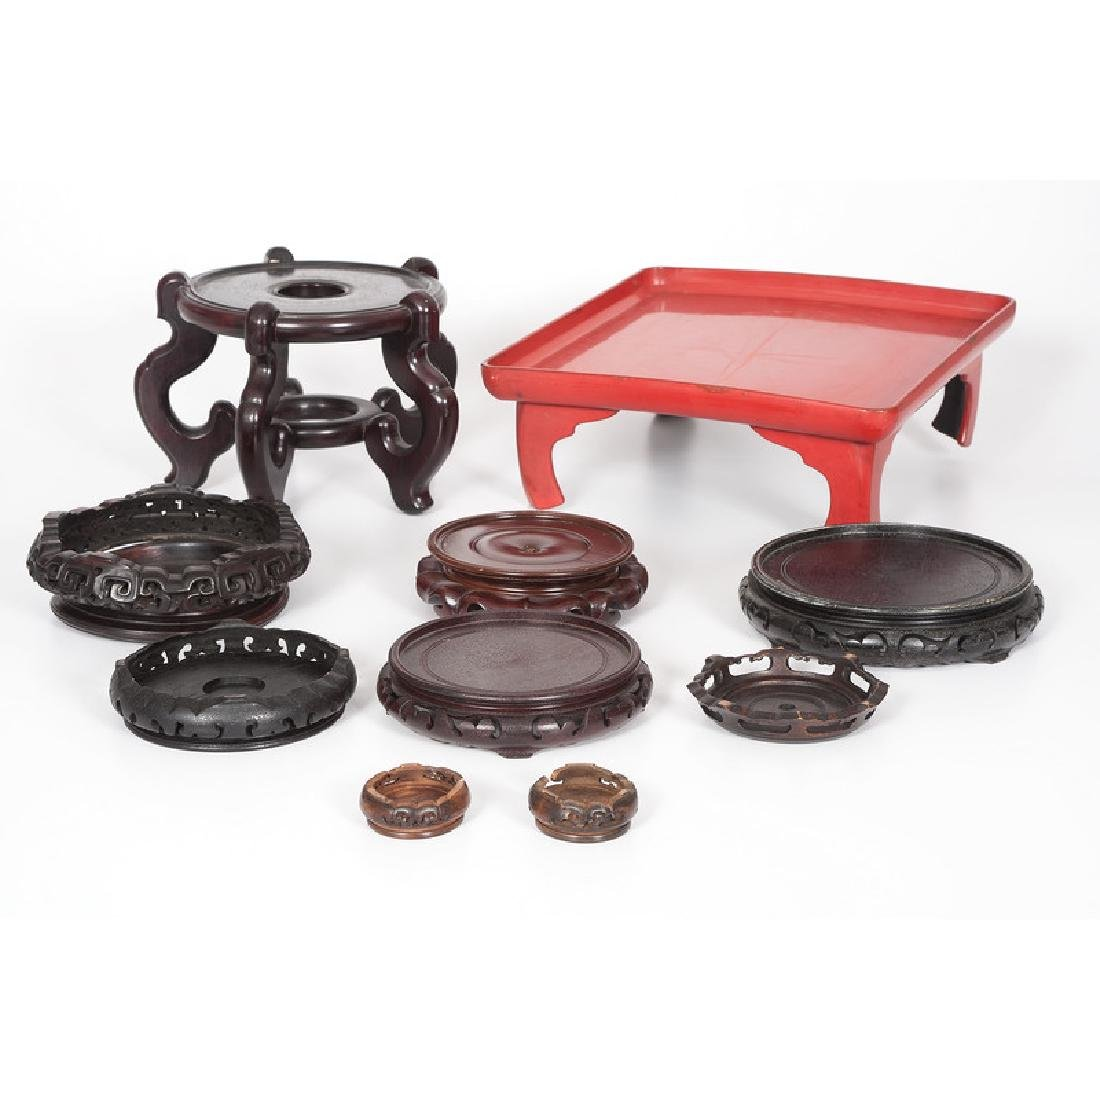 Chinese Carved Hardwood Stands and Red Lacquer Stand